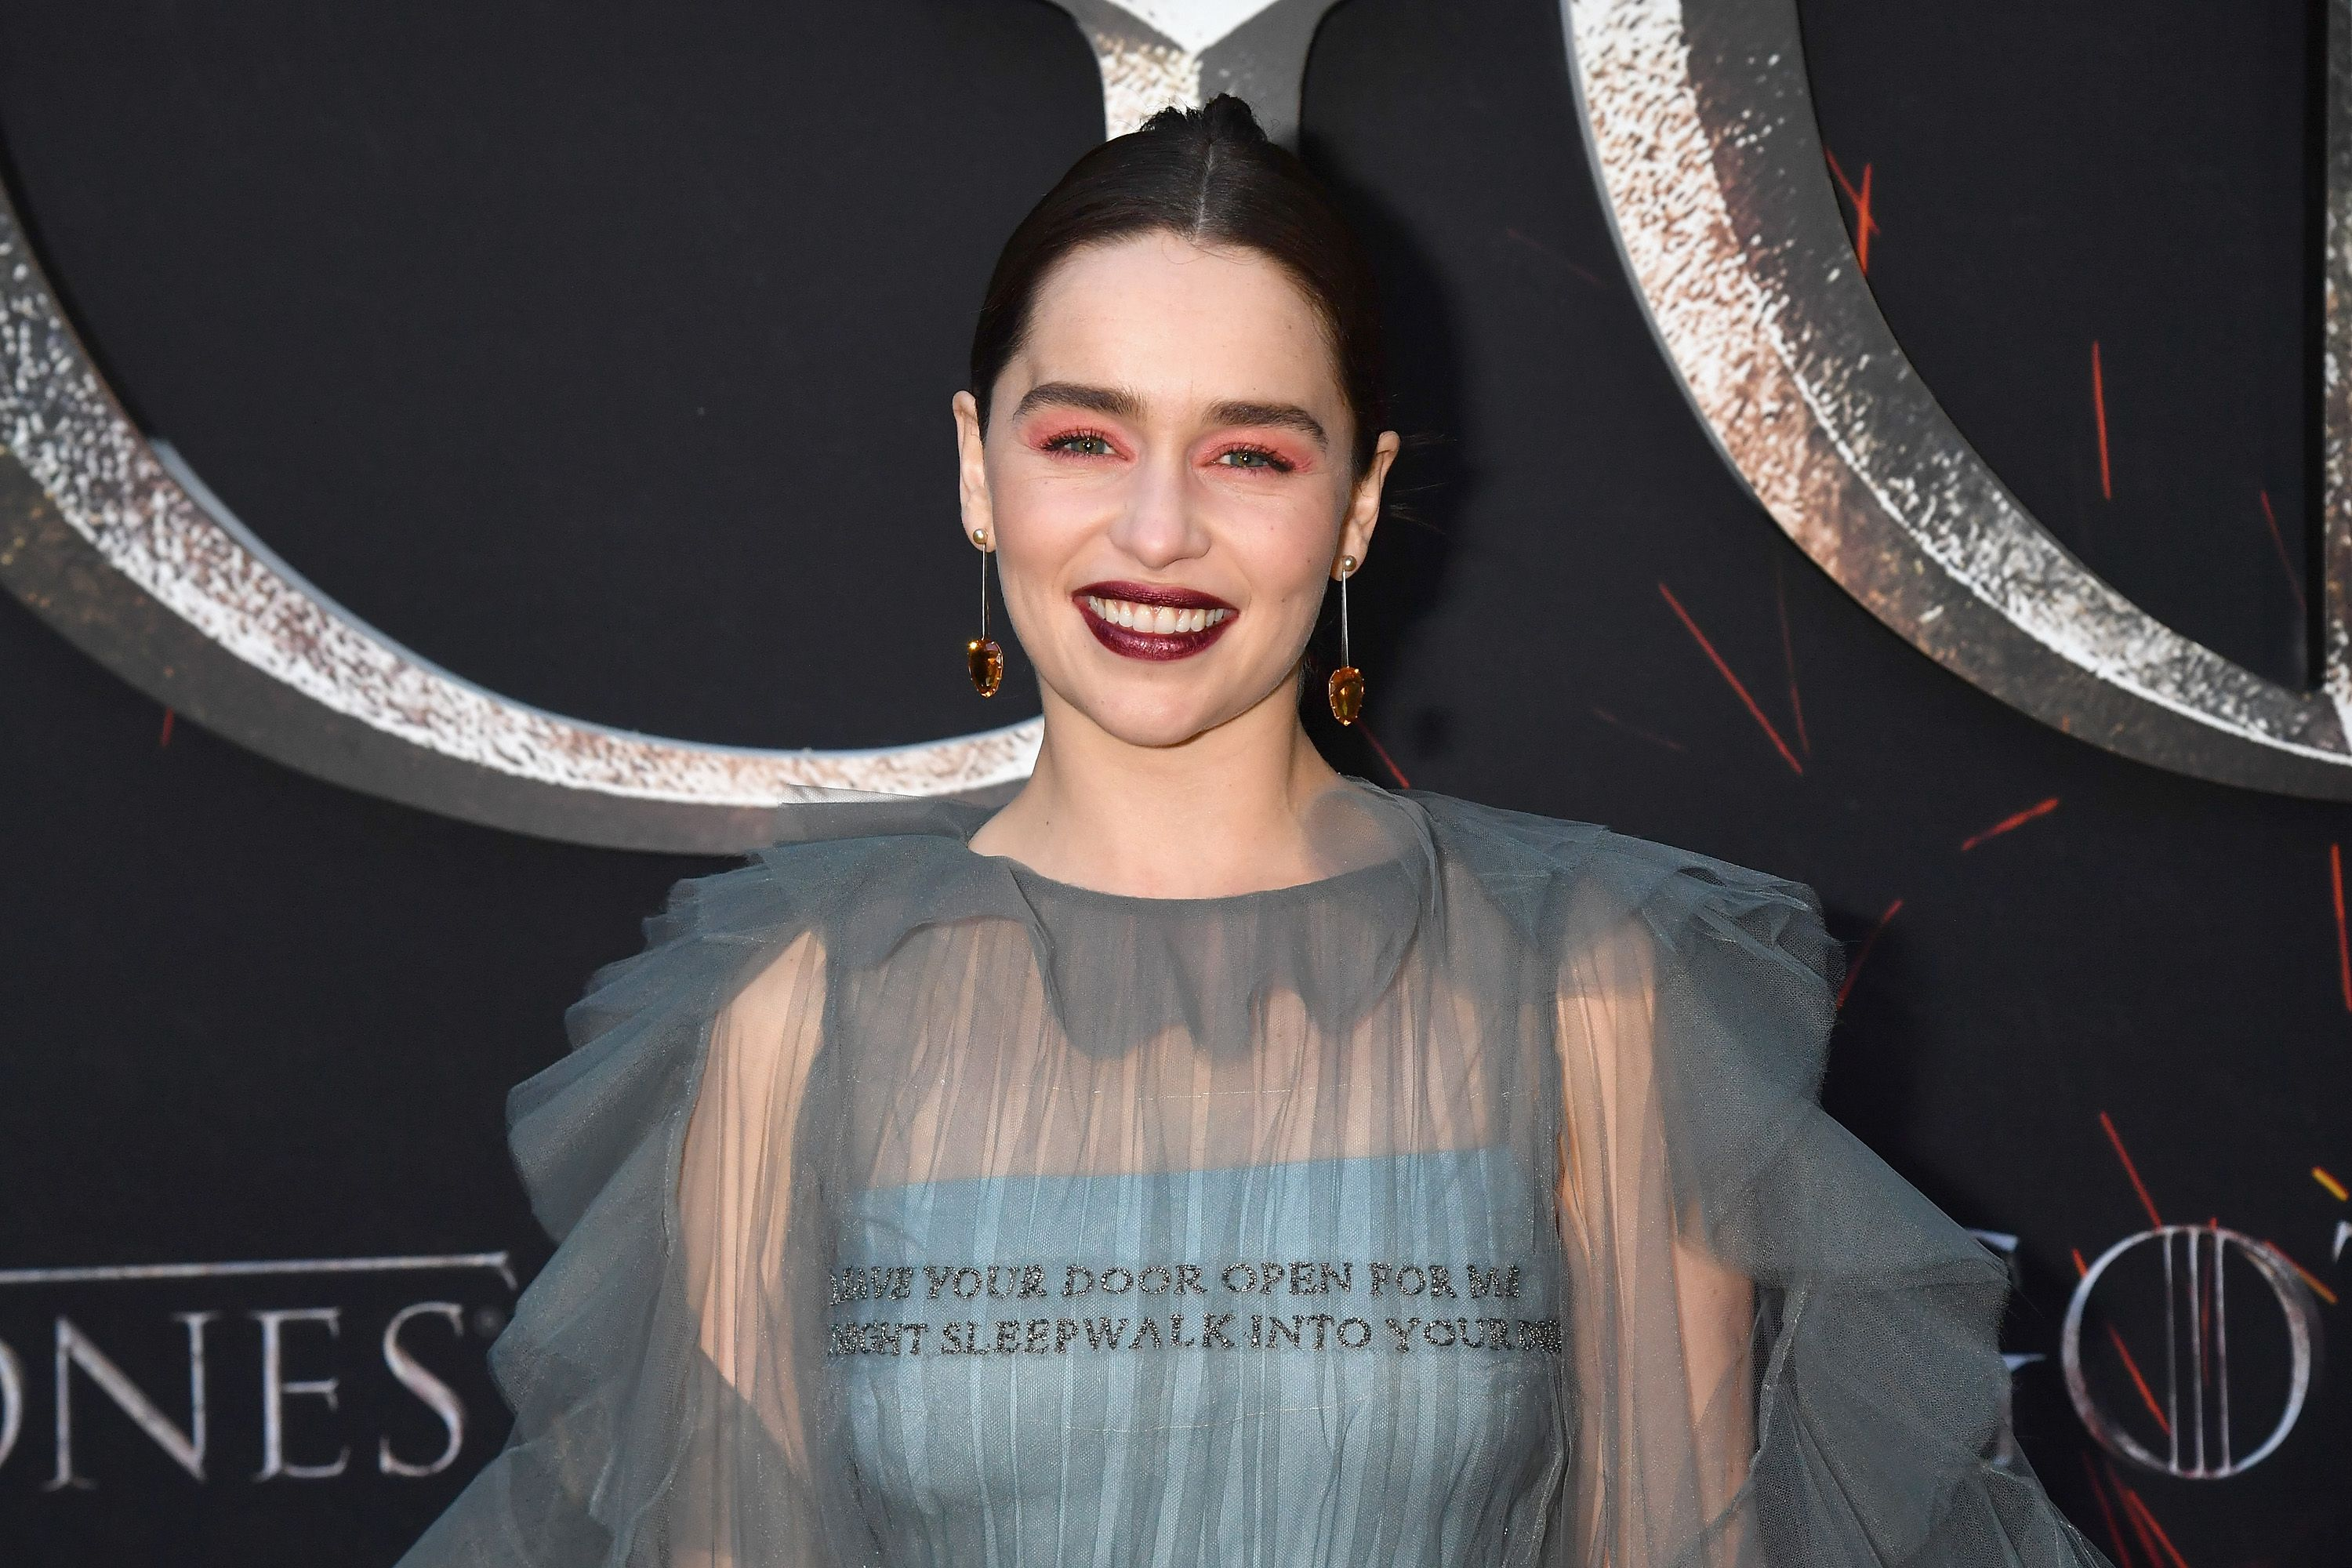 Did Emilia Clarke Drop a Hint About 'Game of Thrones' With Her Premiere Look?